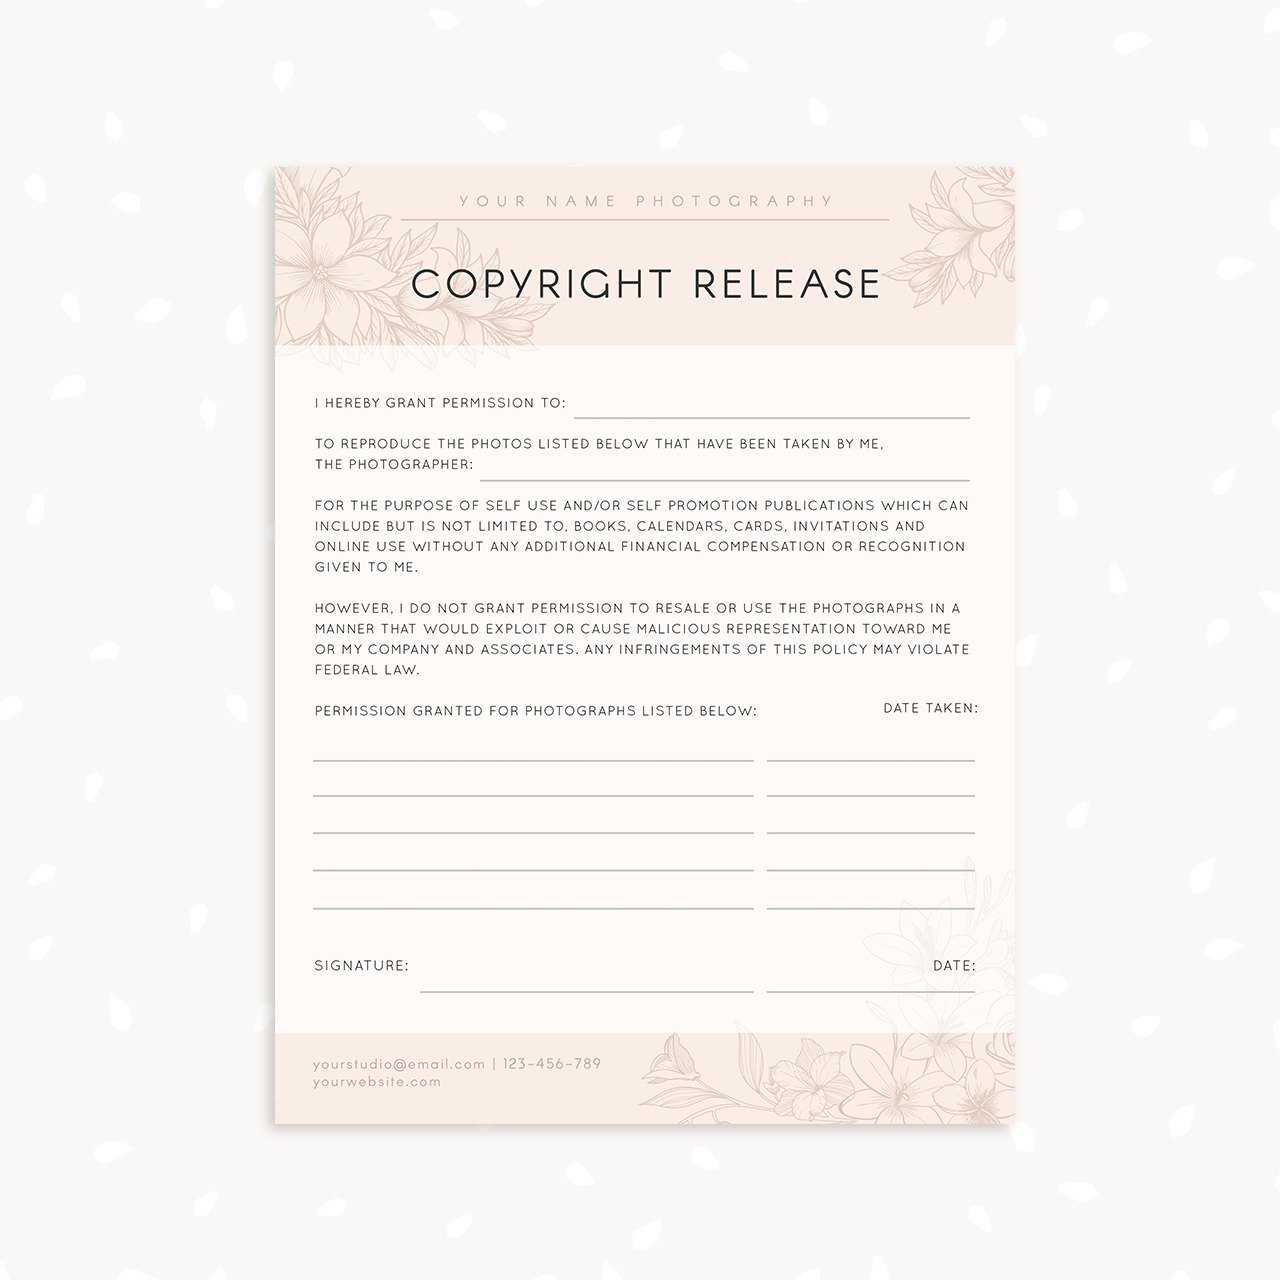 copyright release form template - 28 images - photo copyright ...